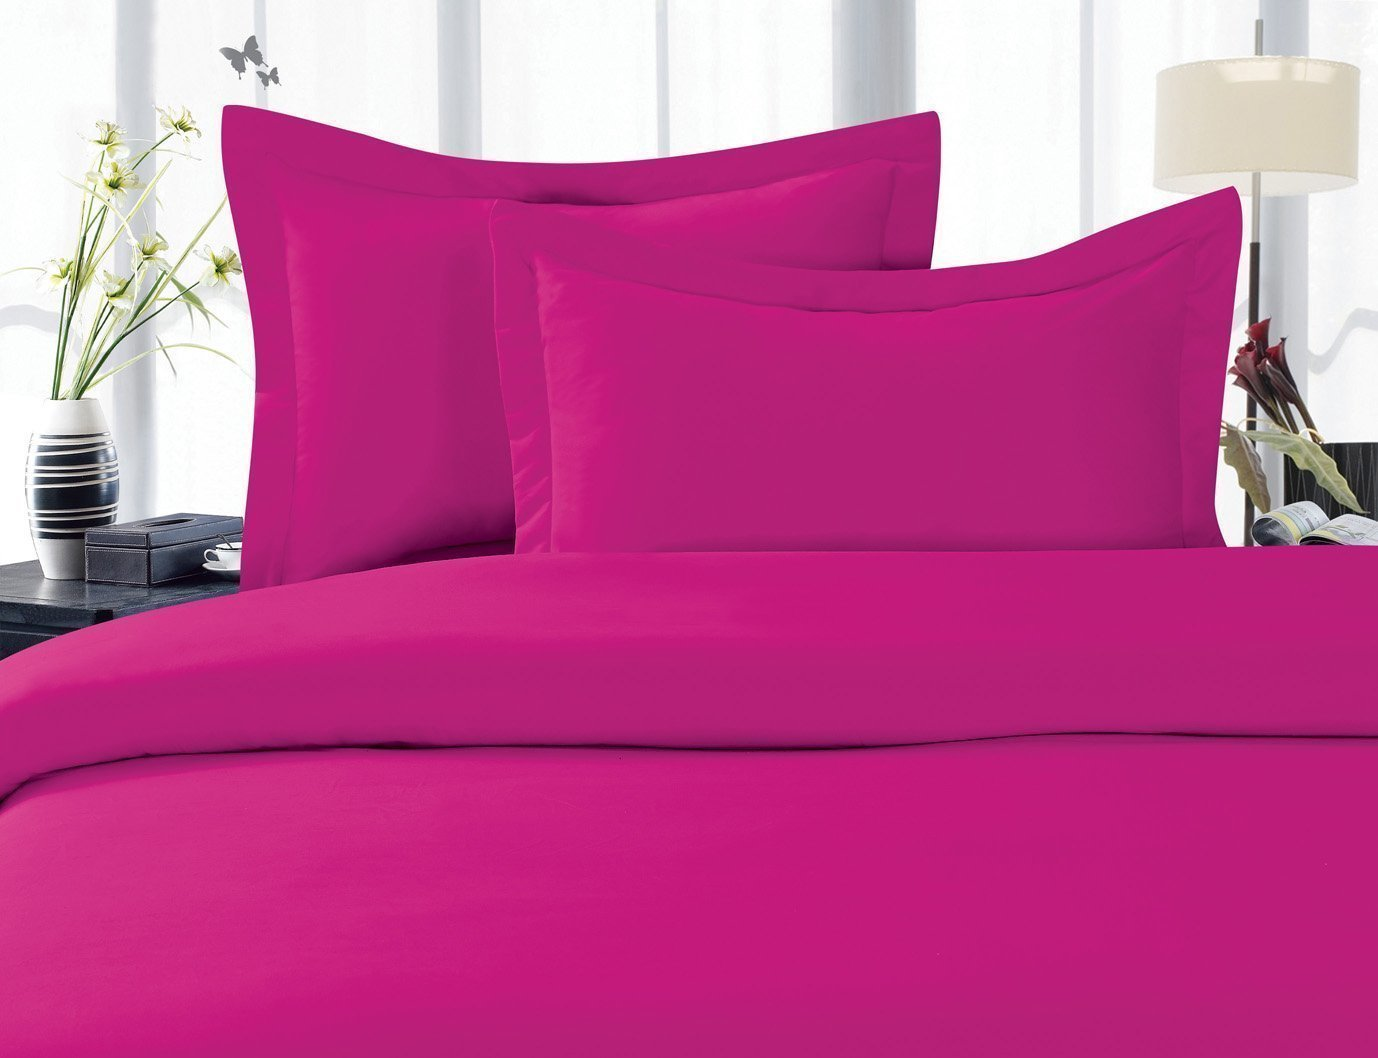 4-Piece Bed Sheet set, Deep Pocket, HypoAllergenic - Queen Hot Pink